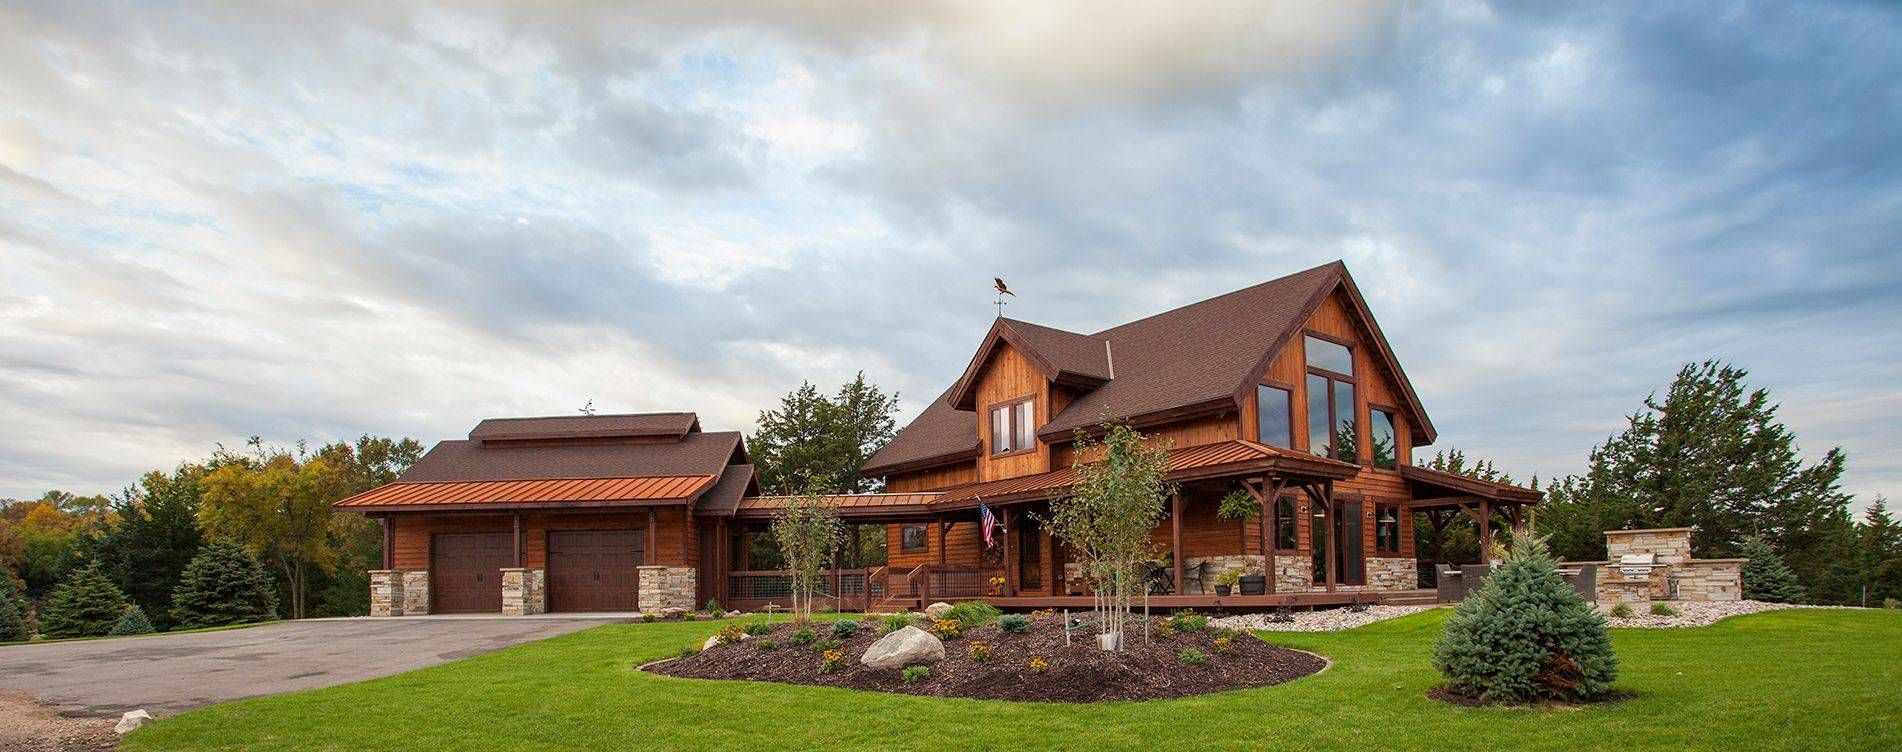 Post And Beam Example1 Barn Home By Sand Creek Post Beam Pole Barn Homes Barn House Log Homes